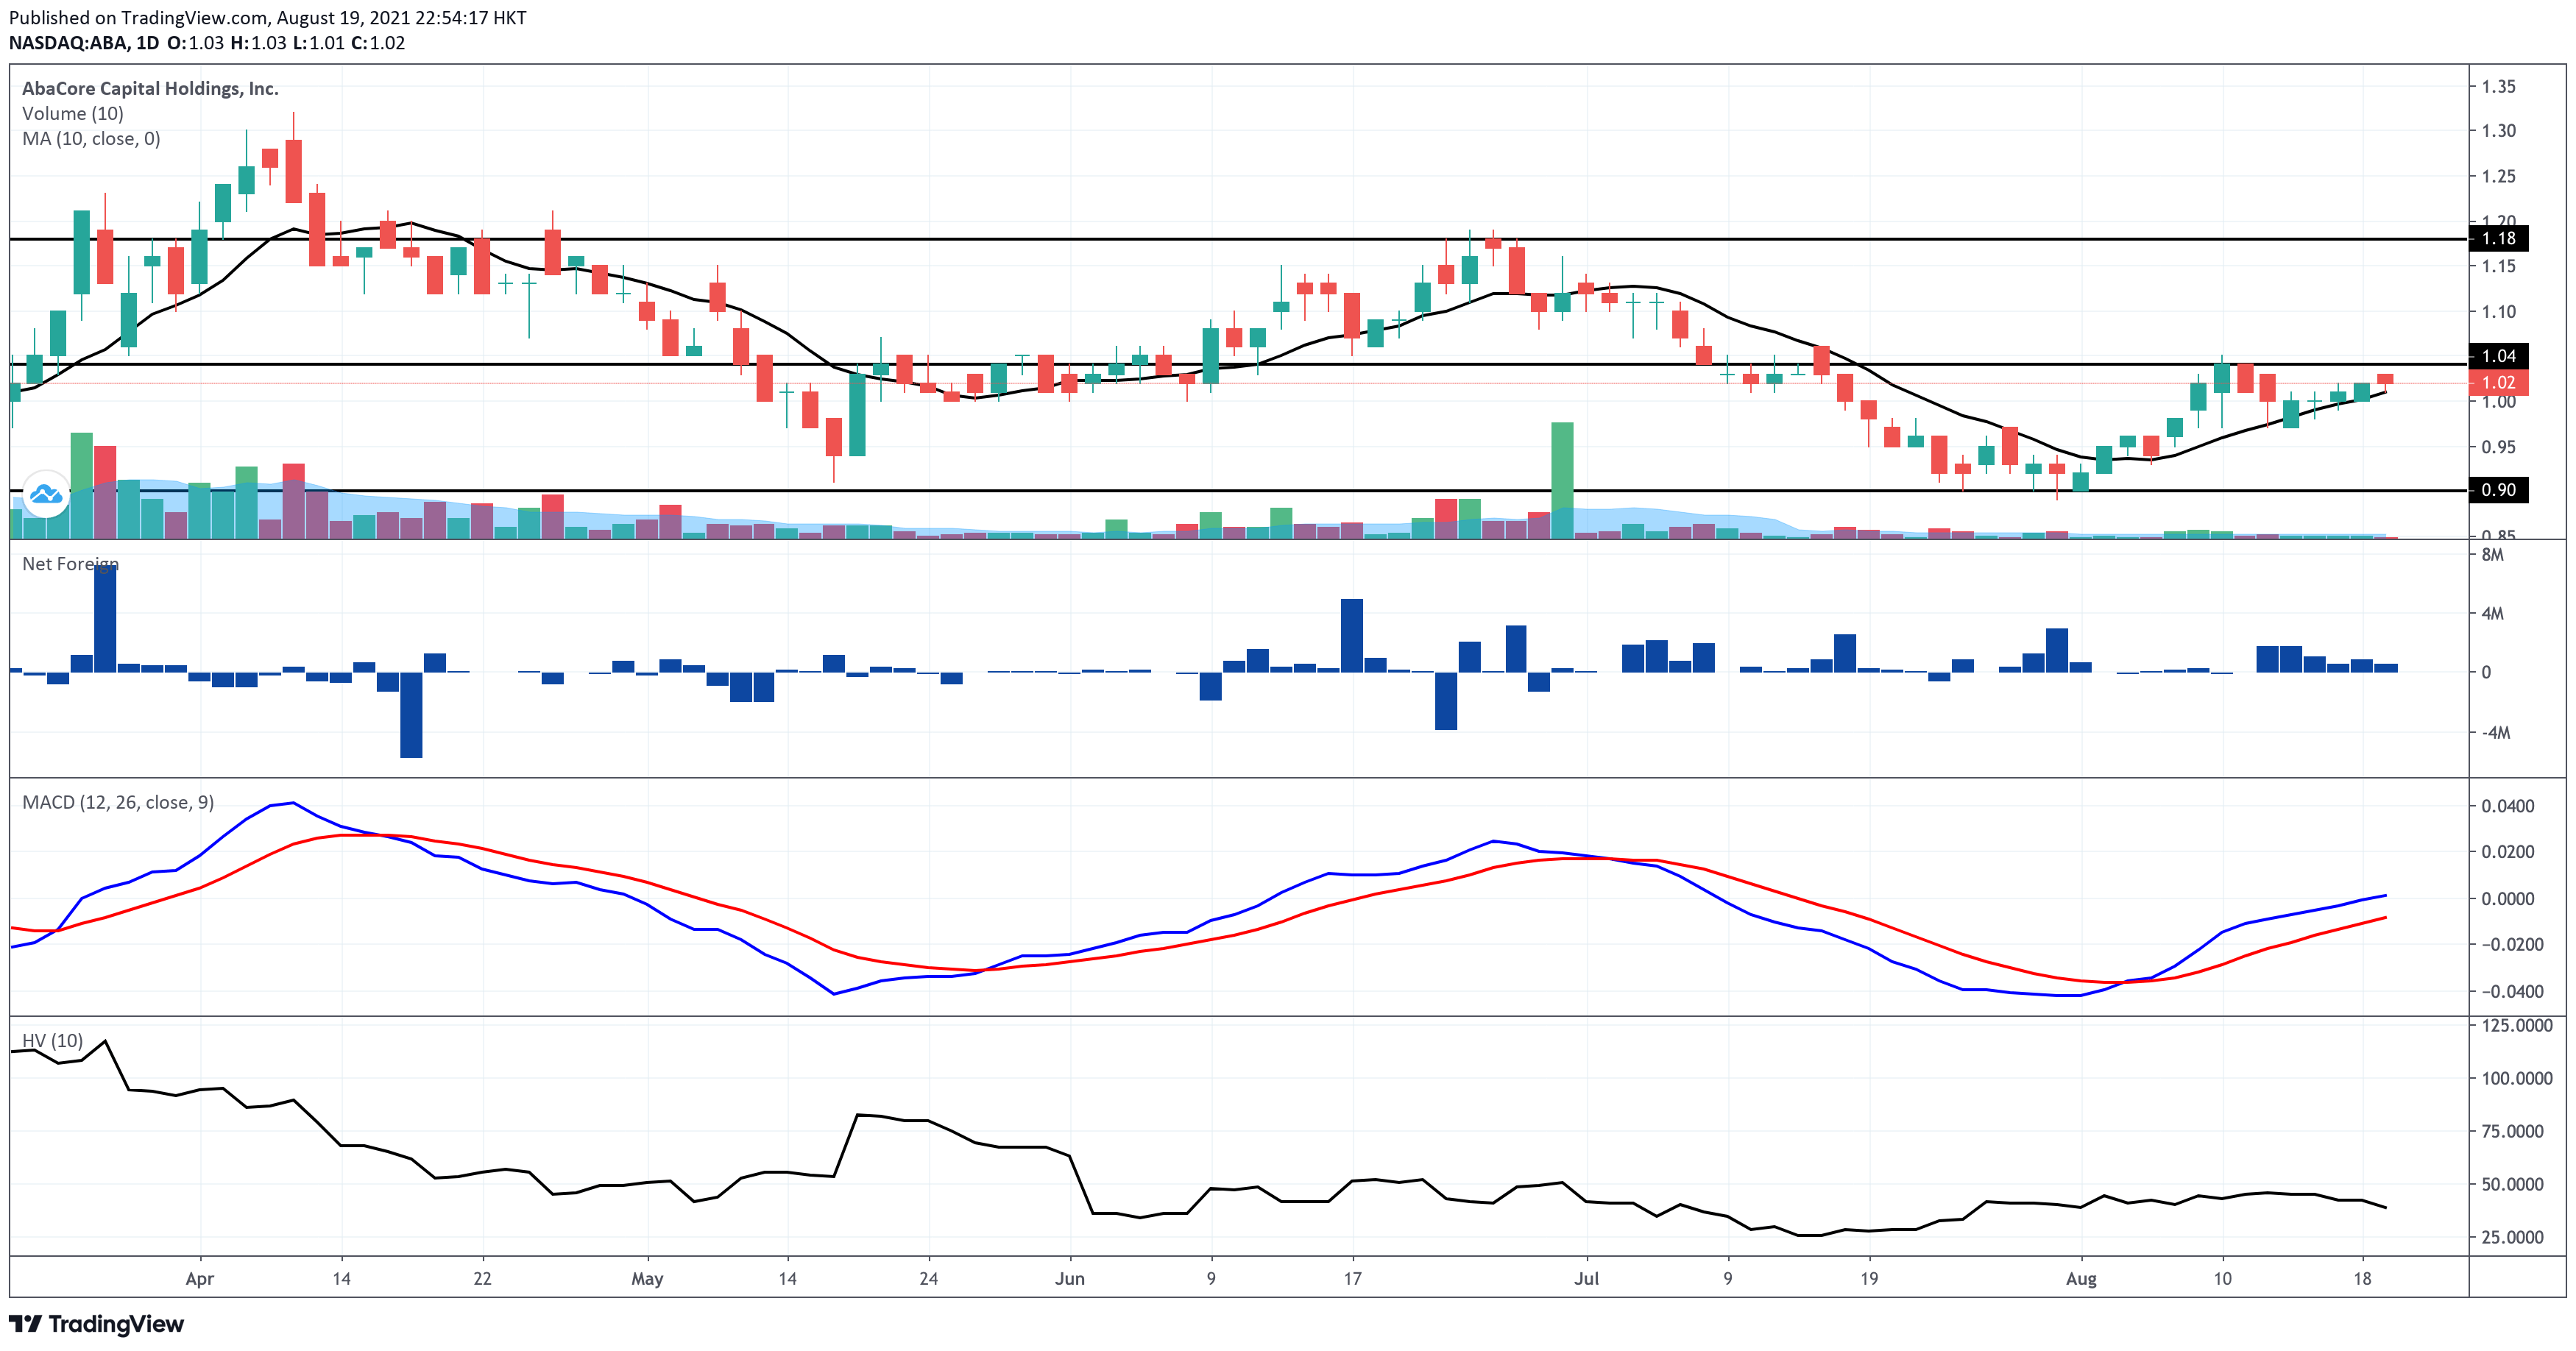 AbaCore Capital Holdings (ABA) Analysis - Daily Chart EOD - 8.19.2021